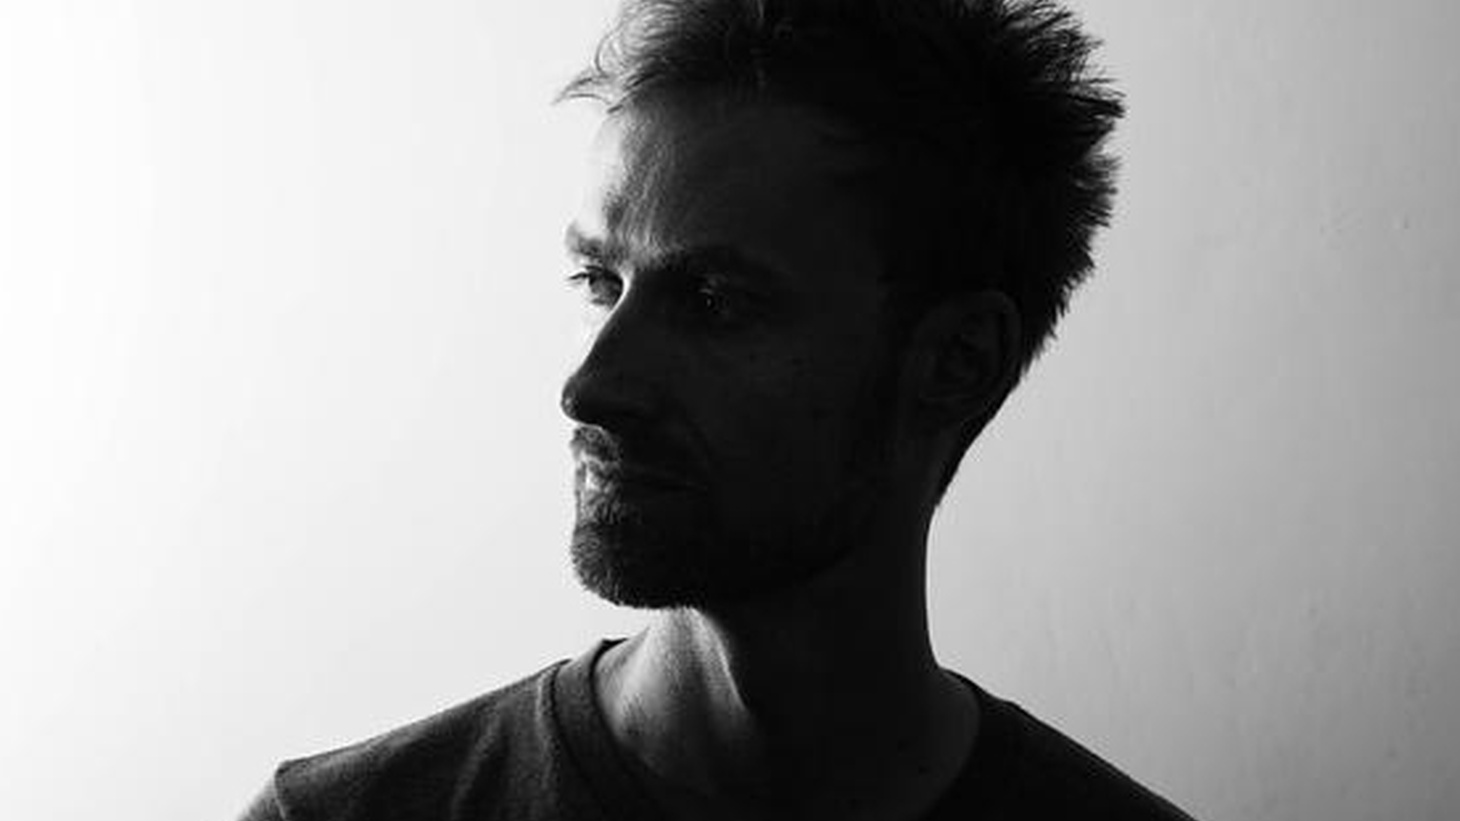 For his new album, Hypermoment, Robot Koch is joined by a mix of veteran collaborators and some newcomers on the rise, offering up a dynamic mix of spacious, often-ethereal soundscapes that manage to remain sturdy and emotionally earthbound at the same time. Perfect chill-out music for your post-holiday shopping frenzies.